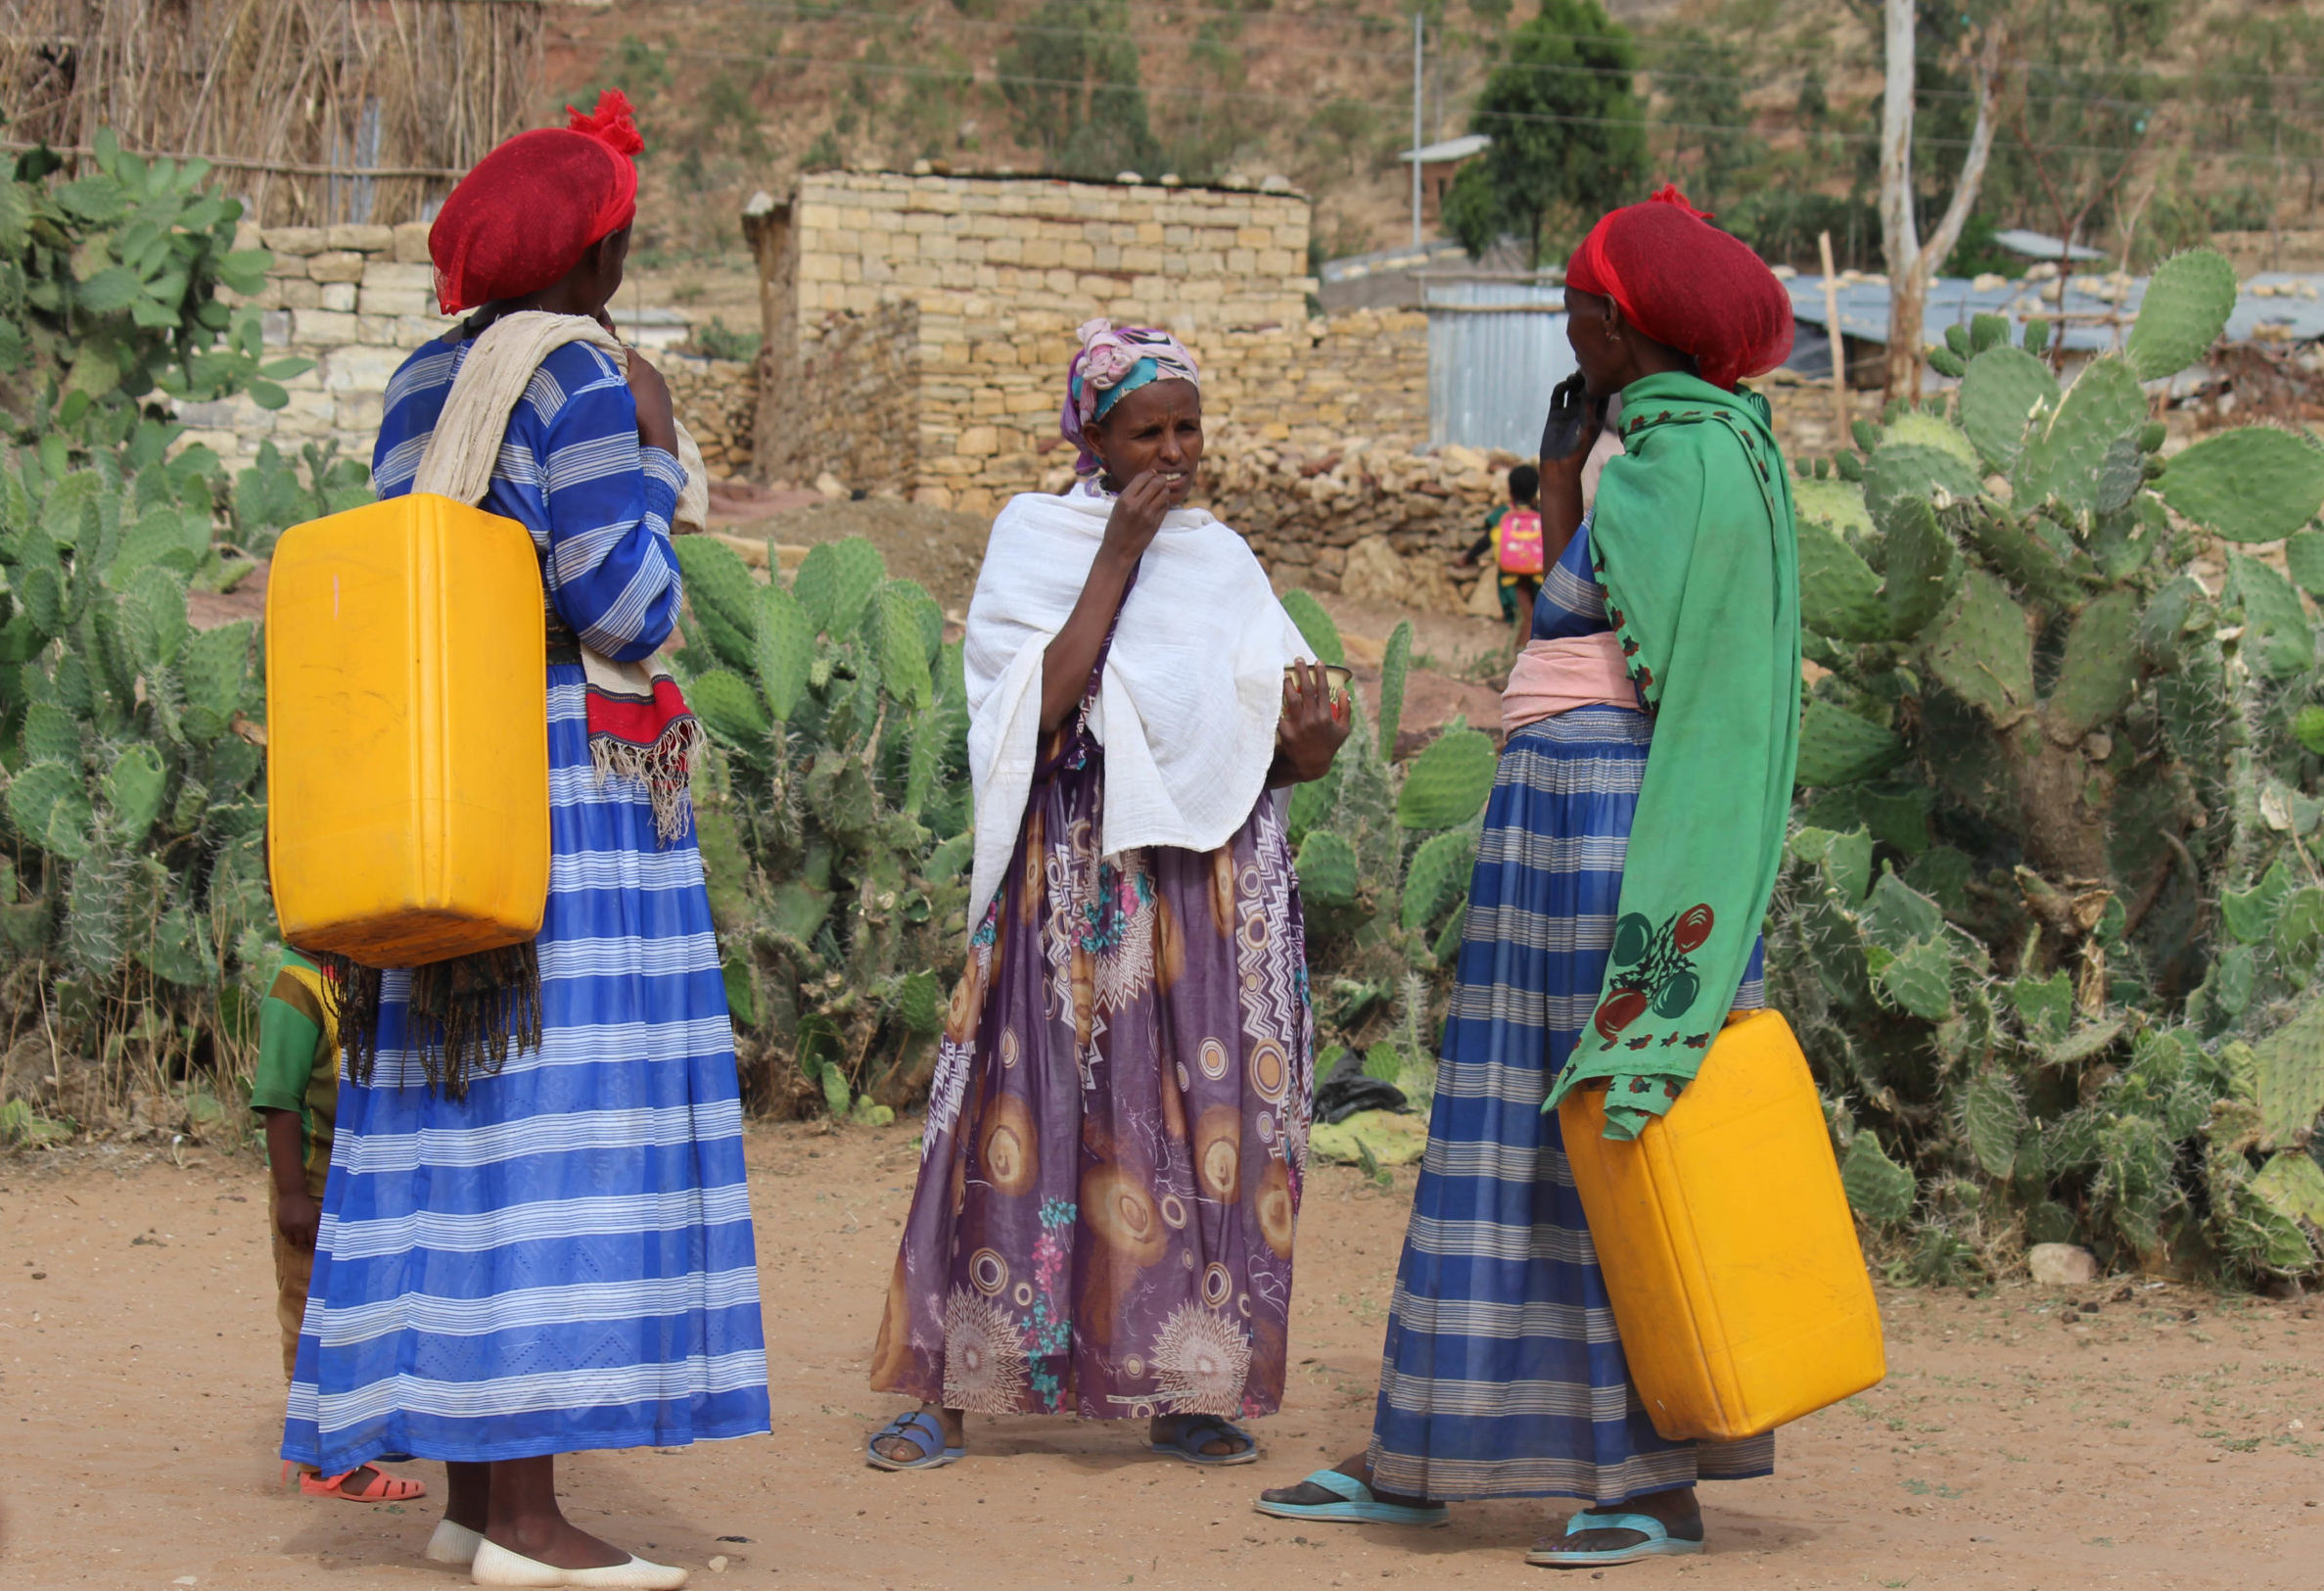 Women talking while carrying water jerrycans, on the outskirt of Wukro, Ethiopia (Credit: Marina Korzenevica)